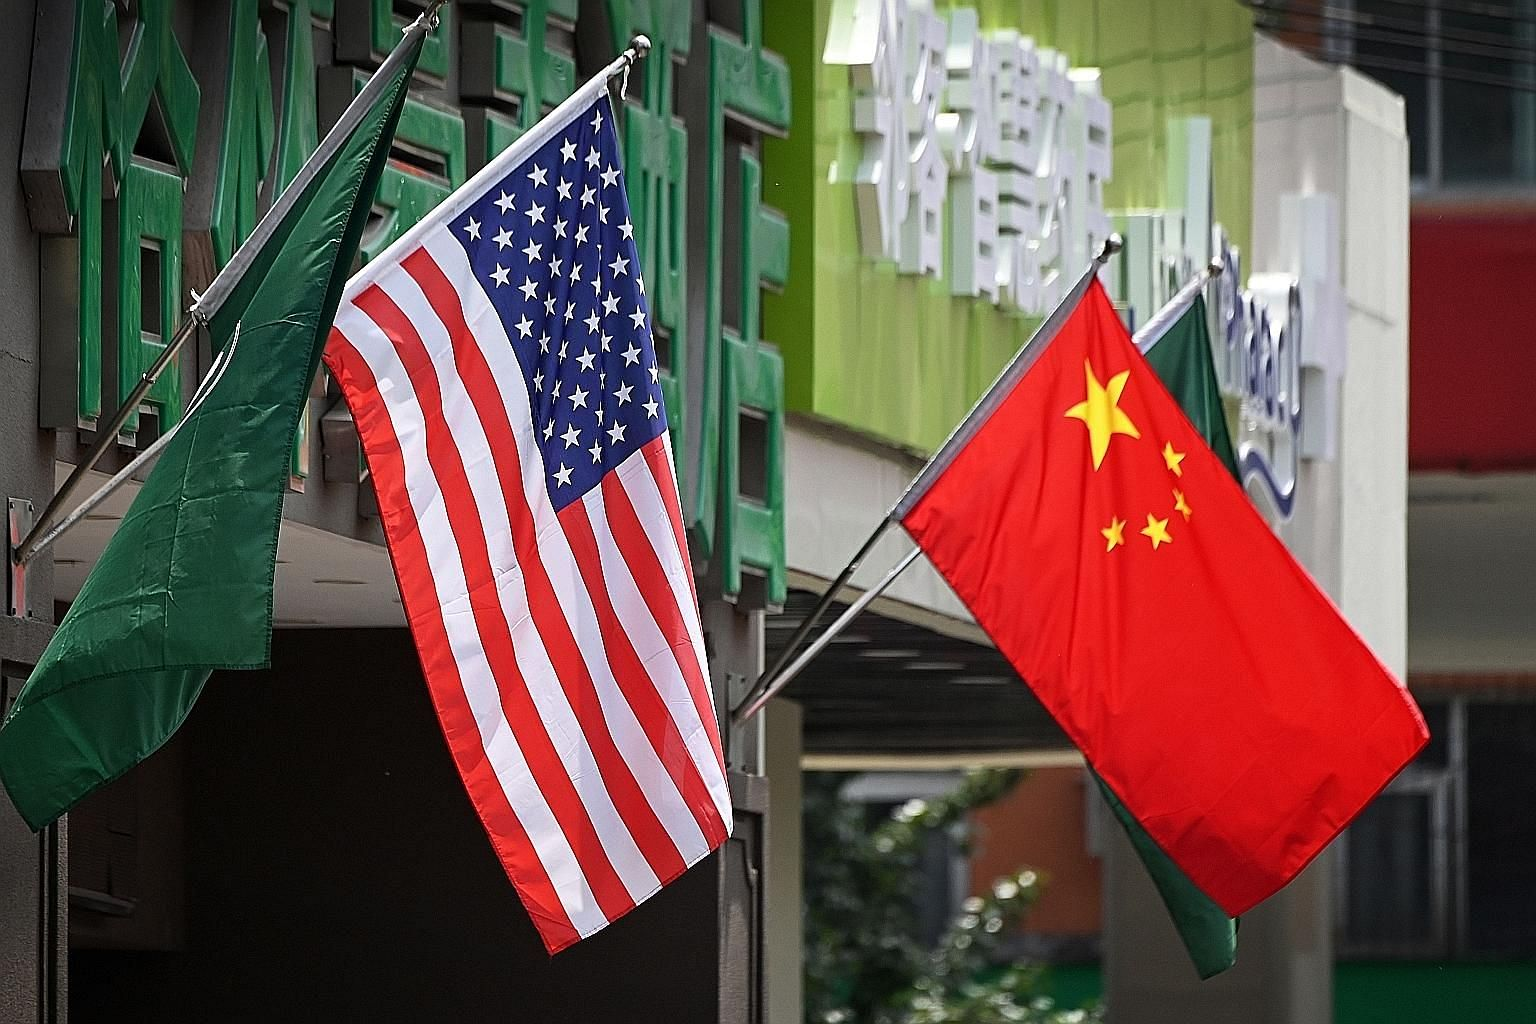 China recently announced higher tariffs on US$60 billion (S$82.1 billion) worth of American goods, in retaliation against US levy increases on US$200 billion worth of Chinese imports.